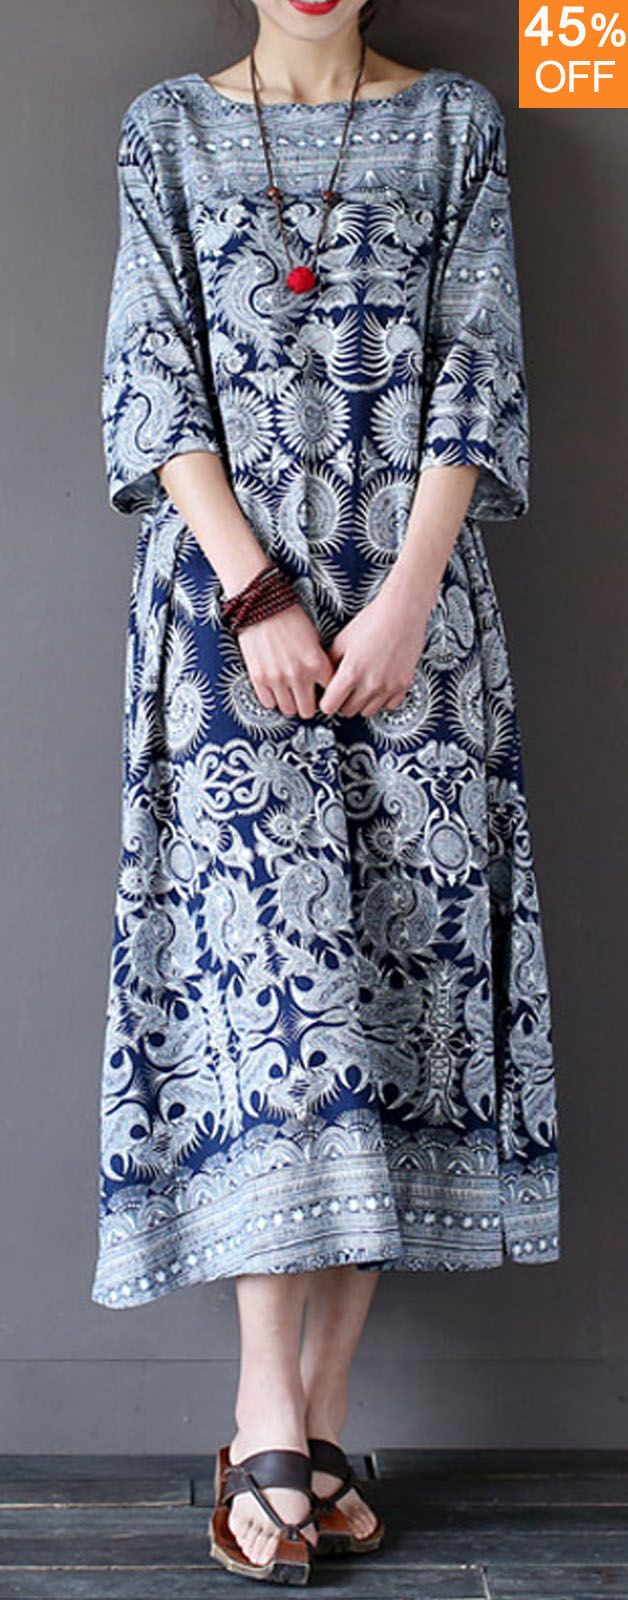 I love those fashionable and beautiful dresses from banggood.com. Find the most suitable and comfortable outfit at incredibly low prices here.  #women #dresses #2018